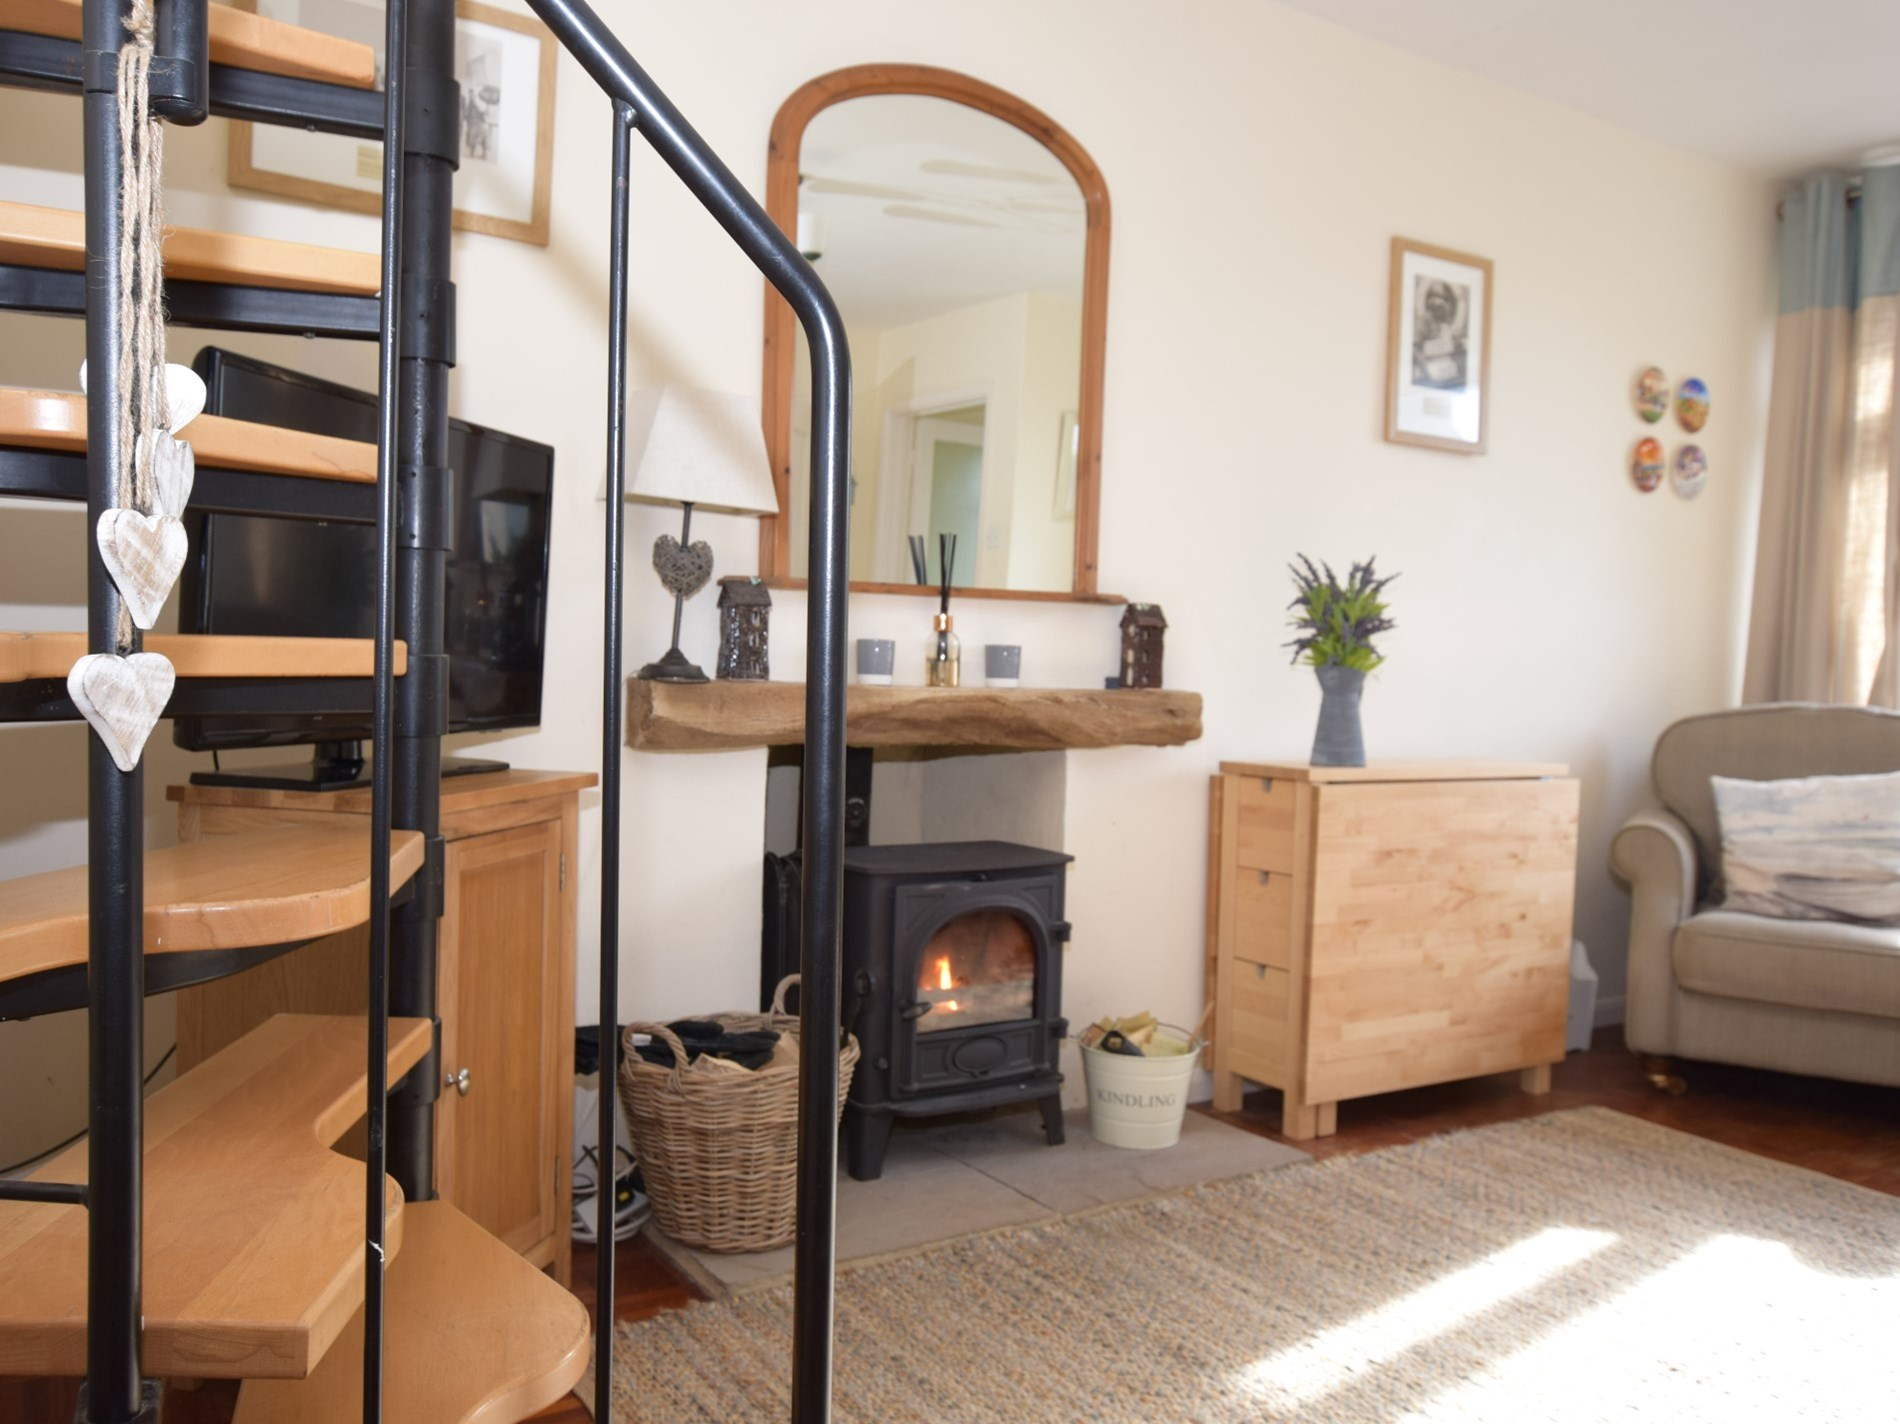 3 Bedroom Cottage in Hastings, South of England